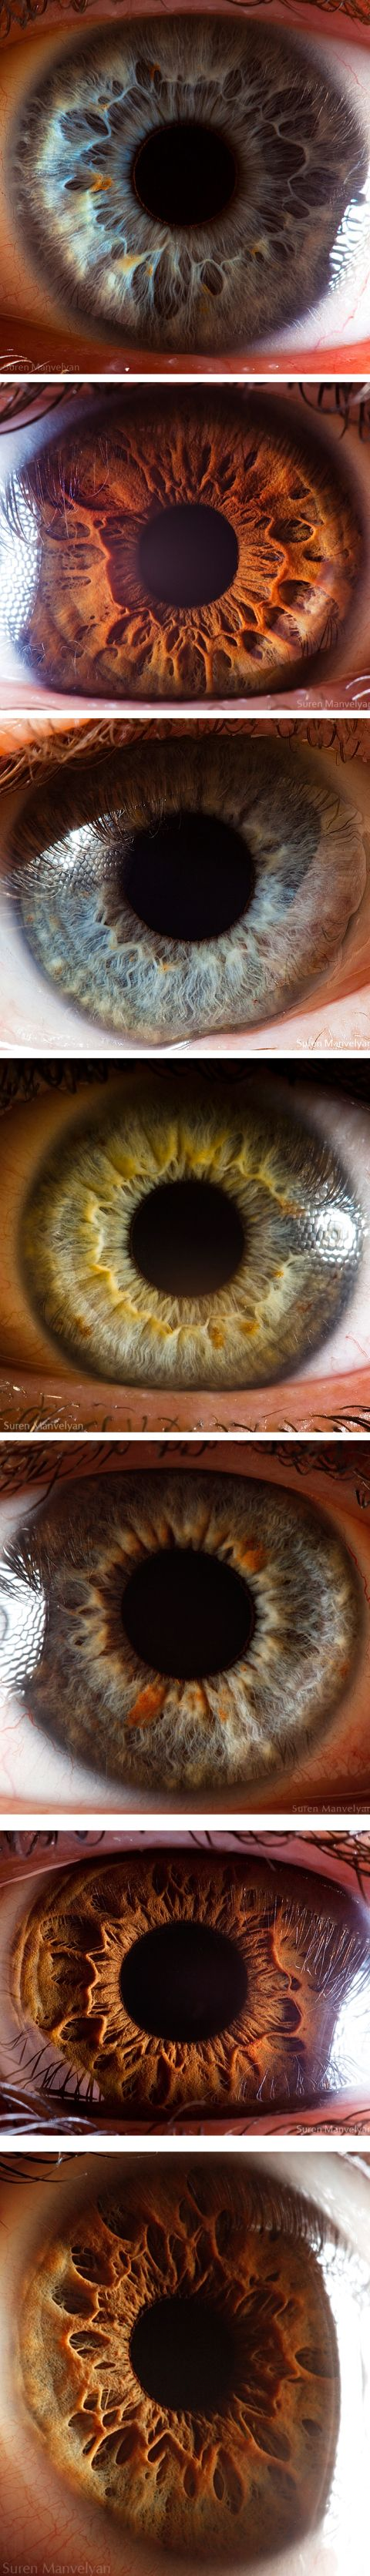 Close up photography of the human eye.